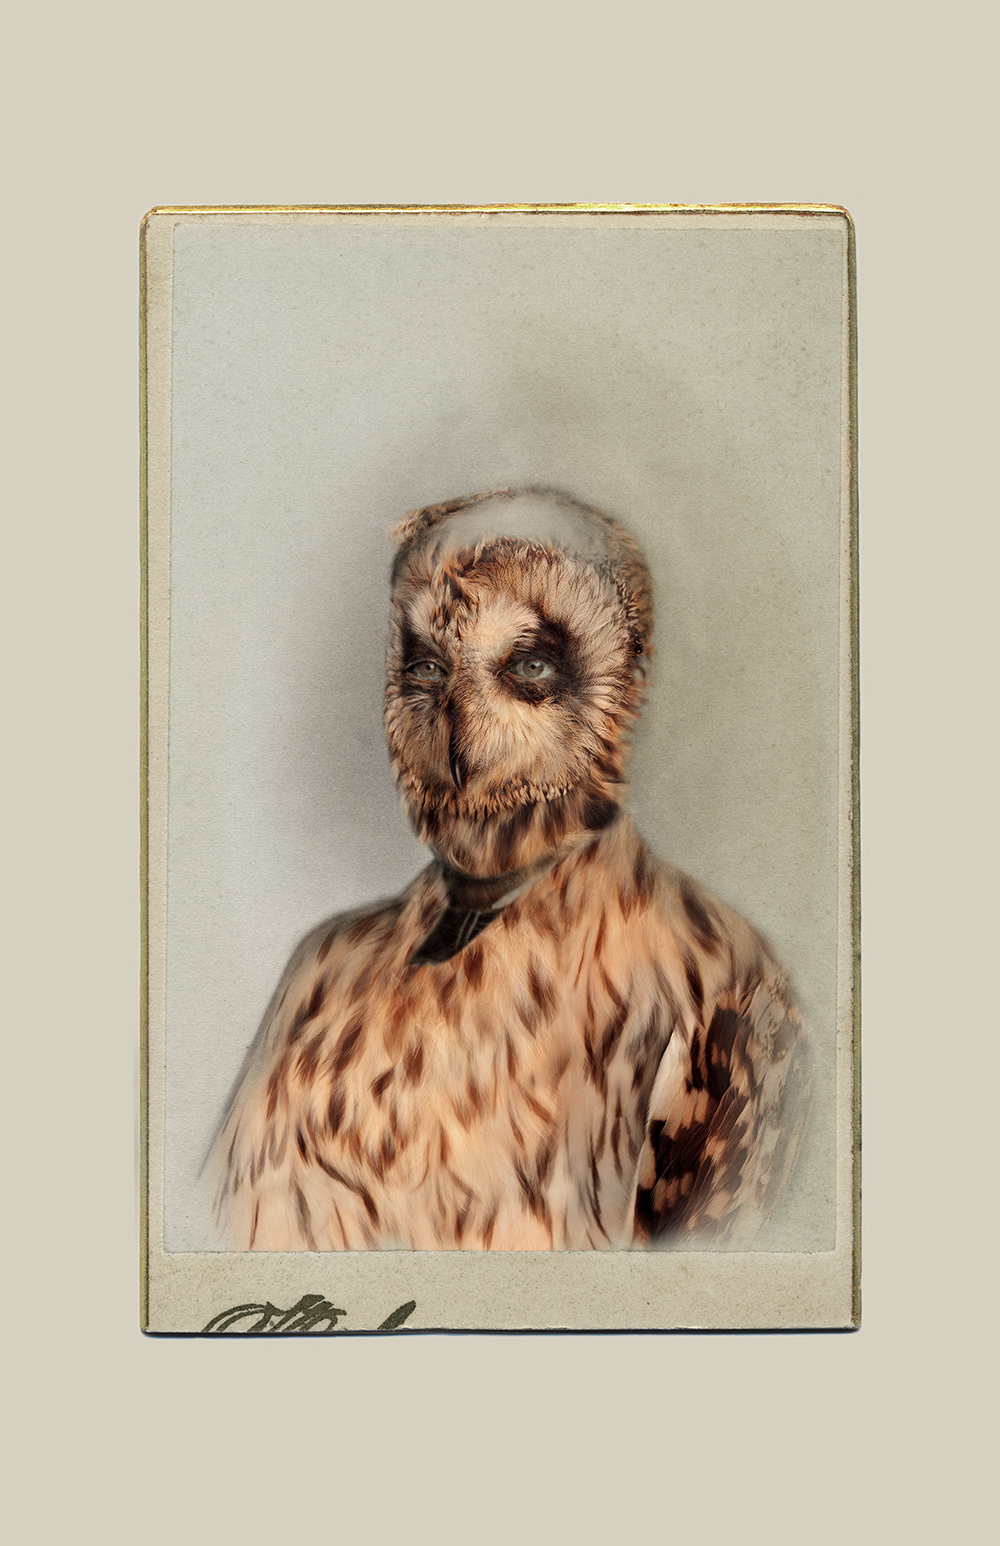 Aviary © Sara Angelucci   Short-eared Owl/endangered , 2013 C-print, 22 x 33.5 inches